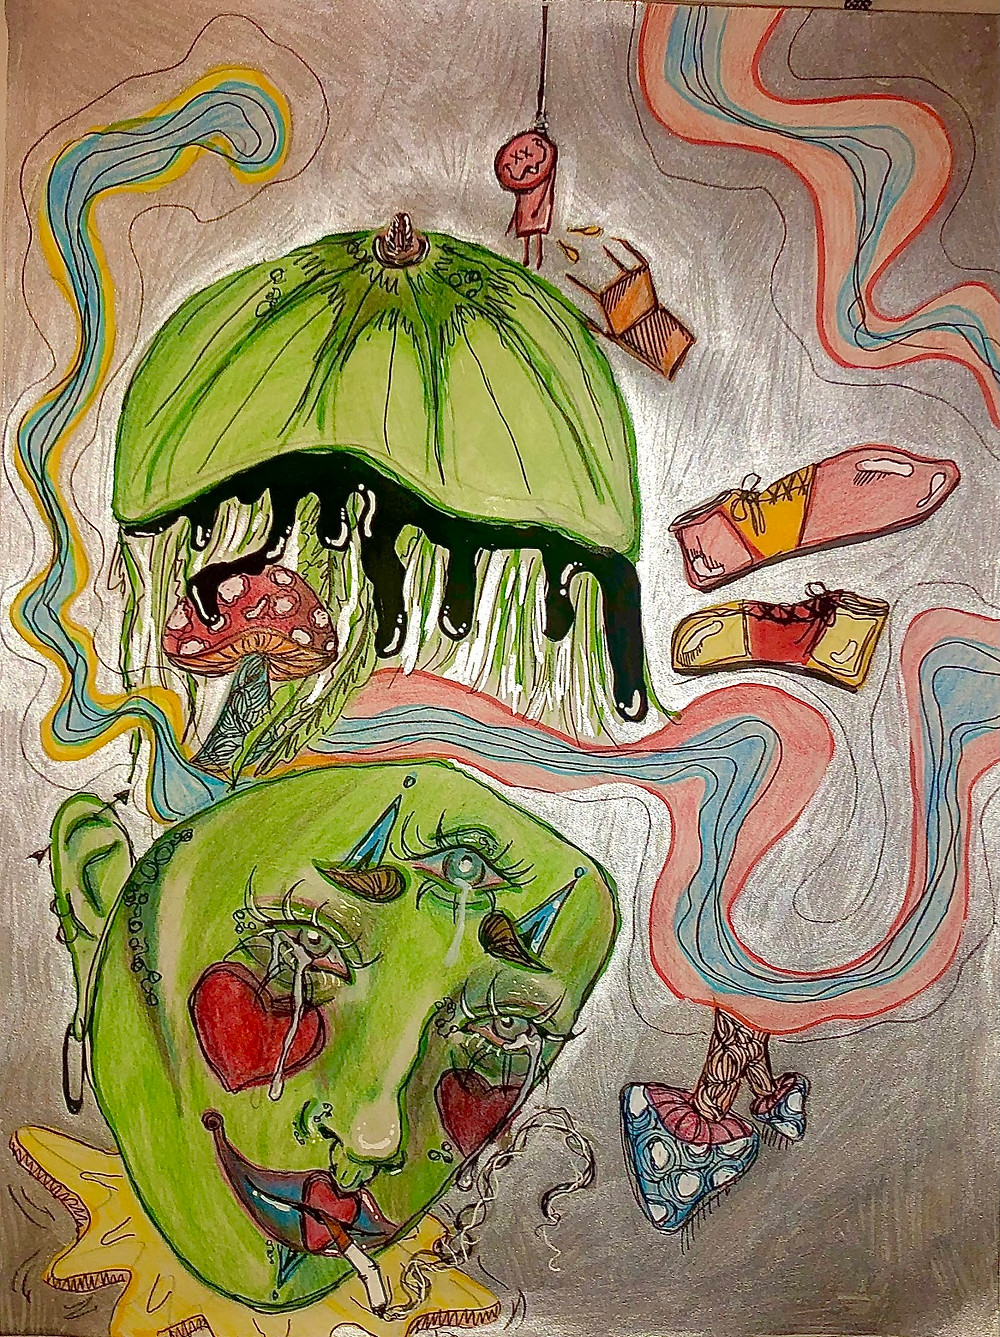 CW: imagery around suicide. A somewhat psychedelic style drawing of a green apple that is also a person's head. The person has three eyes and hearts on their cheeks and is smoking a cigarette. There are mushrooms and smoke and red bowling shoes in the background, as well as a chair and a small stick figure hanging from a noose.